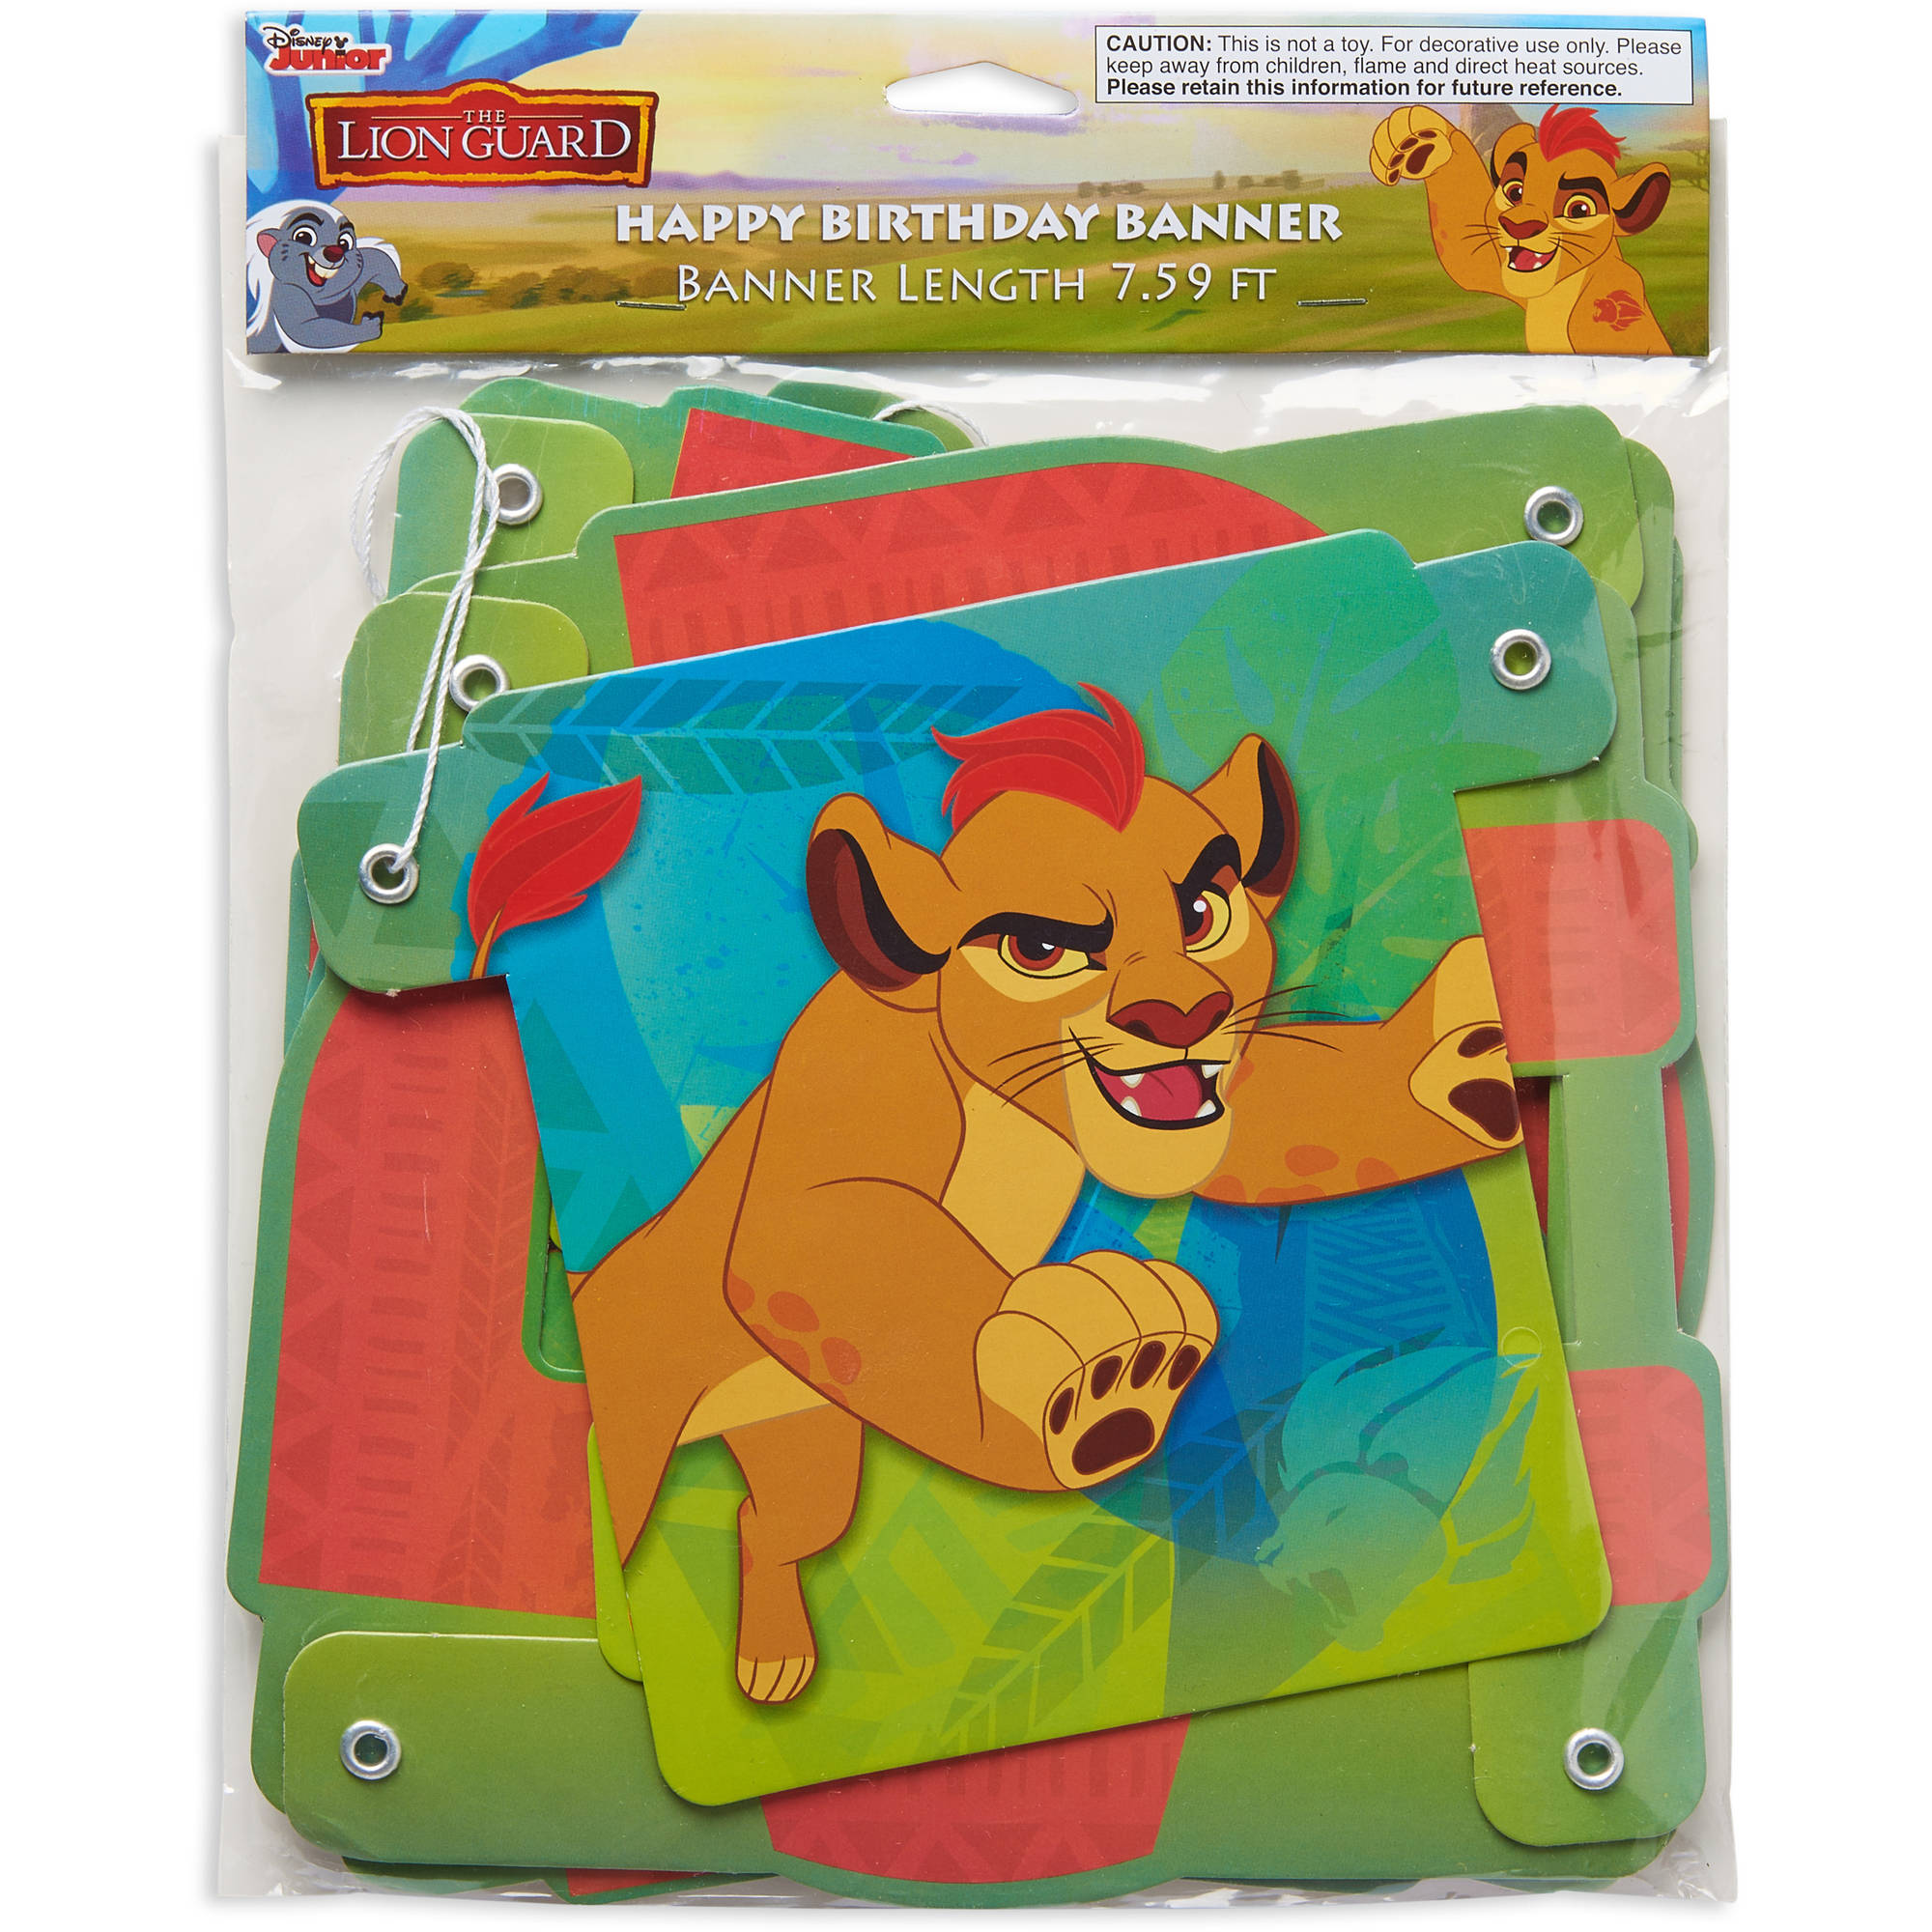 Lion Guard Birthday Party Decoration Banner, 7.59 ft. - Walmart.com